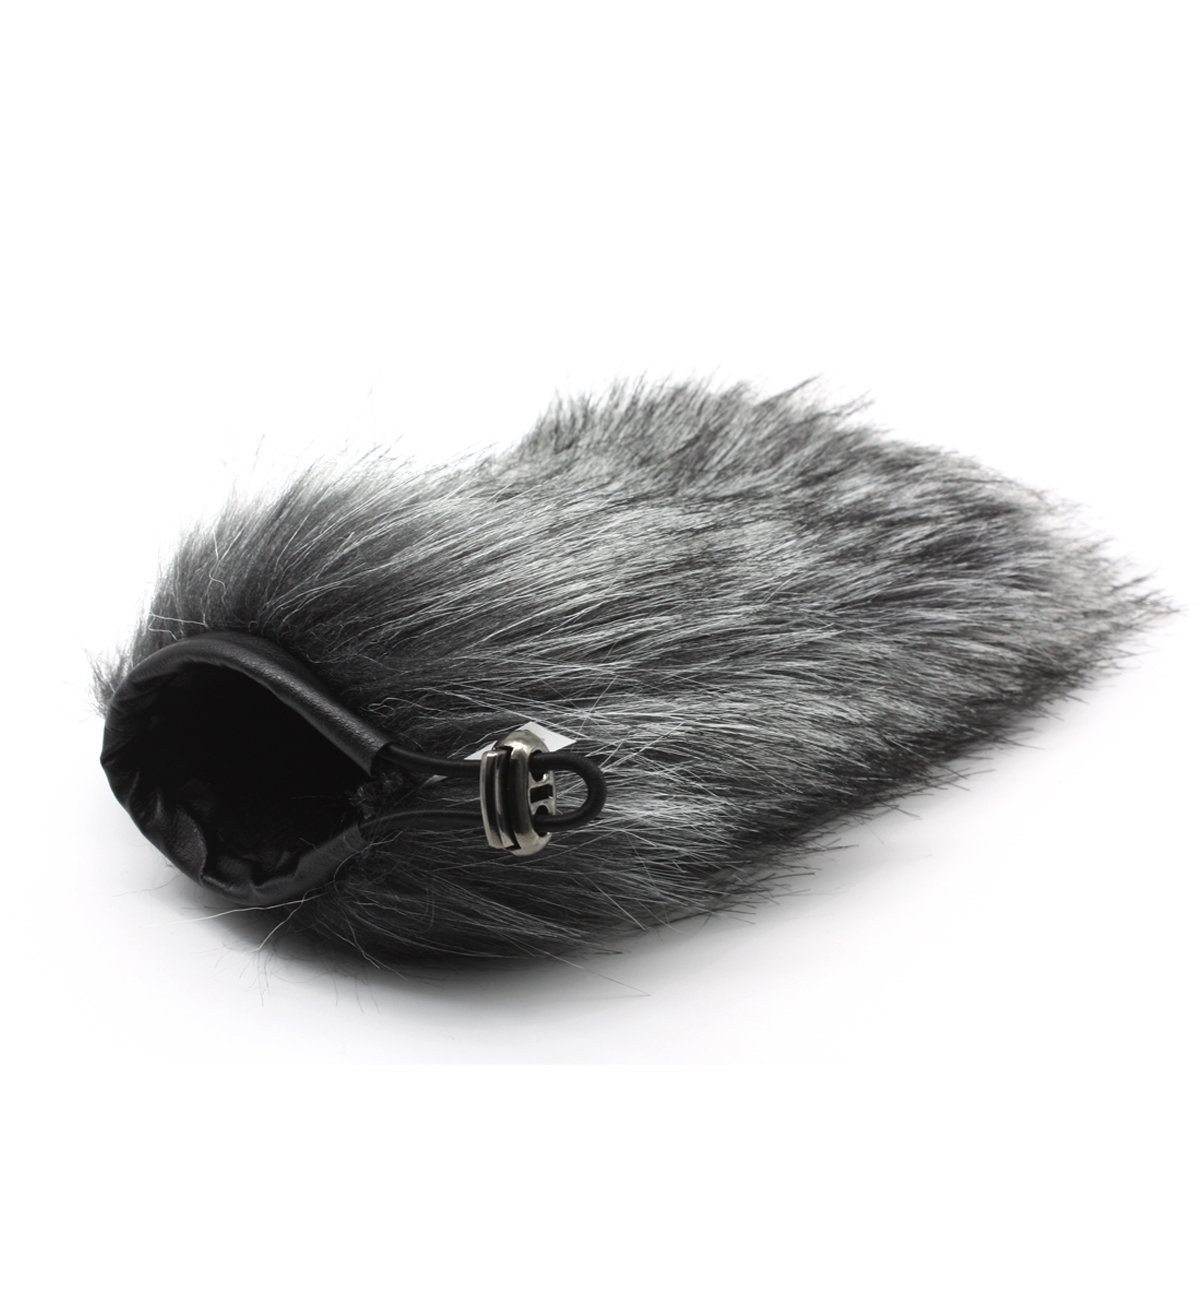 HUANOR HN-17 Outdoor Furry Mic Windscreen Wind Cover Microphone Muff for RODE VIDEOMIC GO Recording Shotgun Recorder